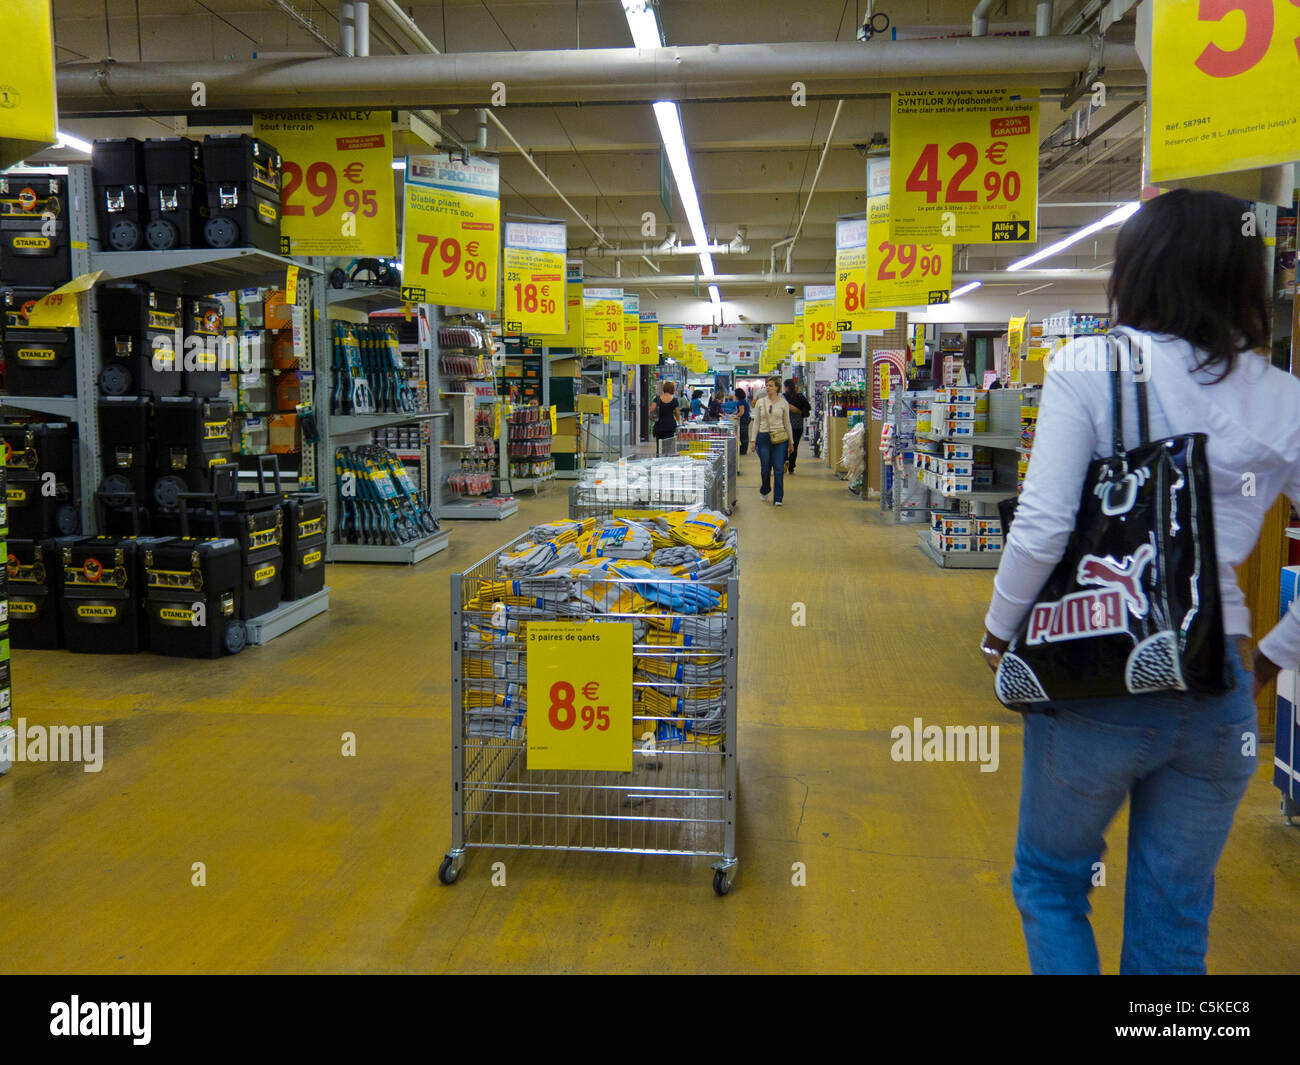 Bras Store Banne Castorama Hardwares Store Stock Photos Hardwares Store Stock Images Alamy